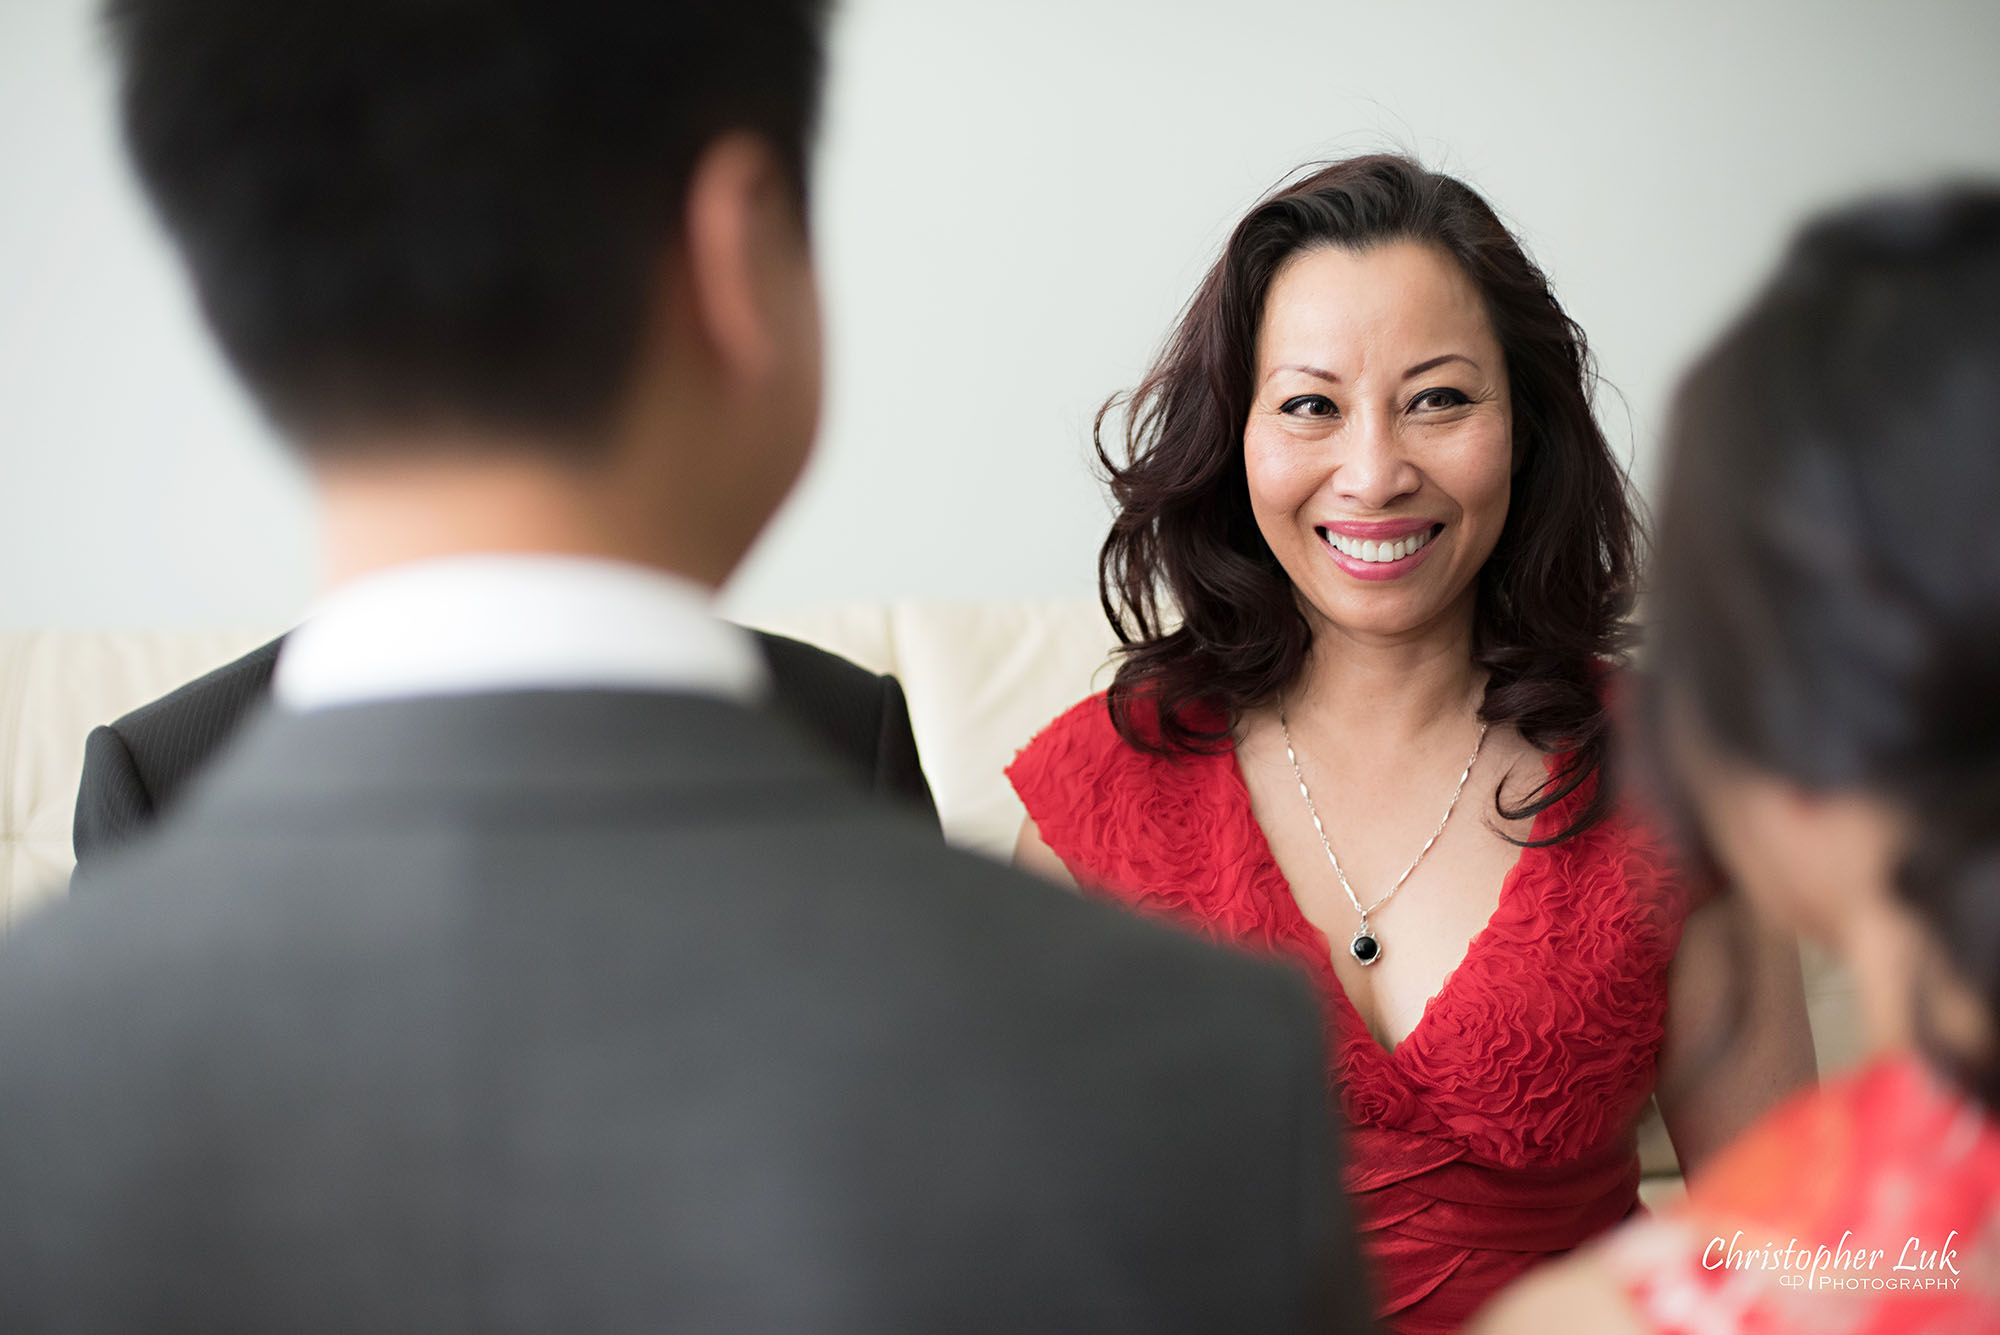 Christopher Luk Photography Toronto Wedding Photographer Chinese Tea Ceremony Bride Groom Family Aunt  Candid Natural Photojournalistic Happy Smile Laughing